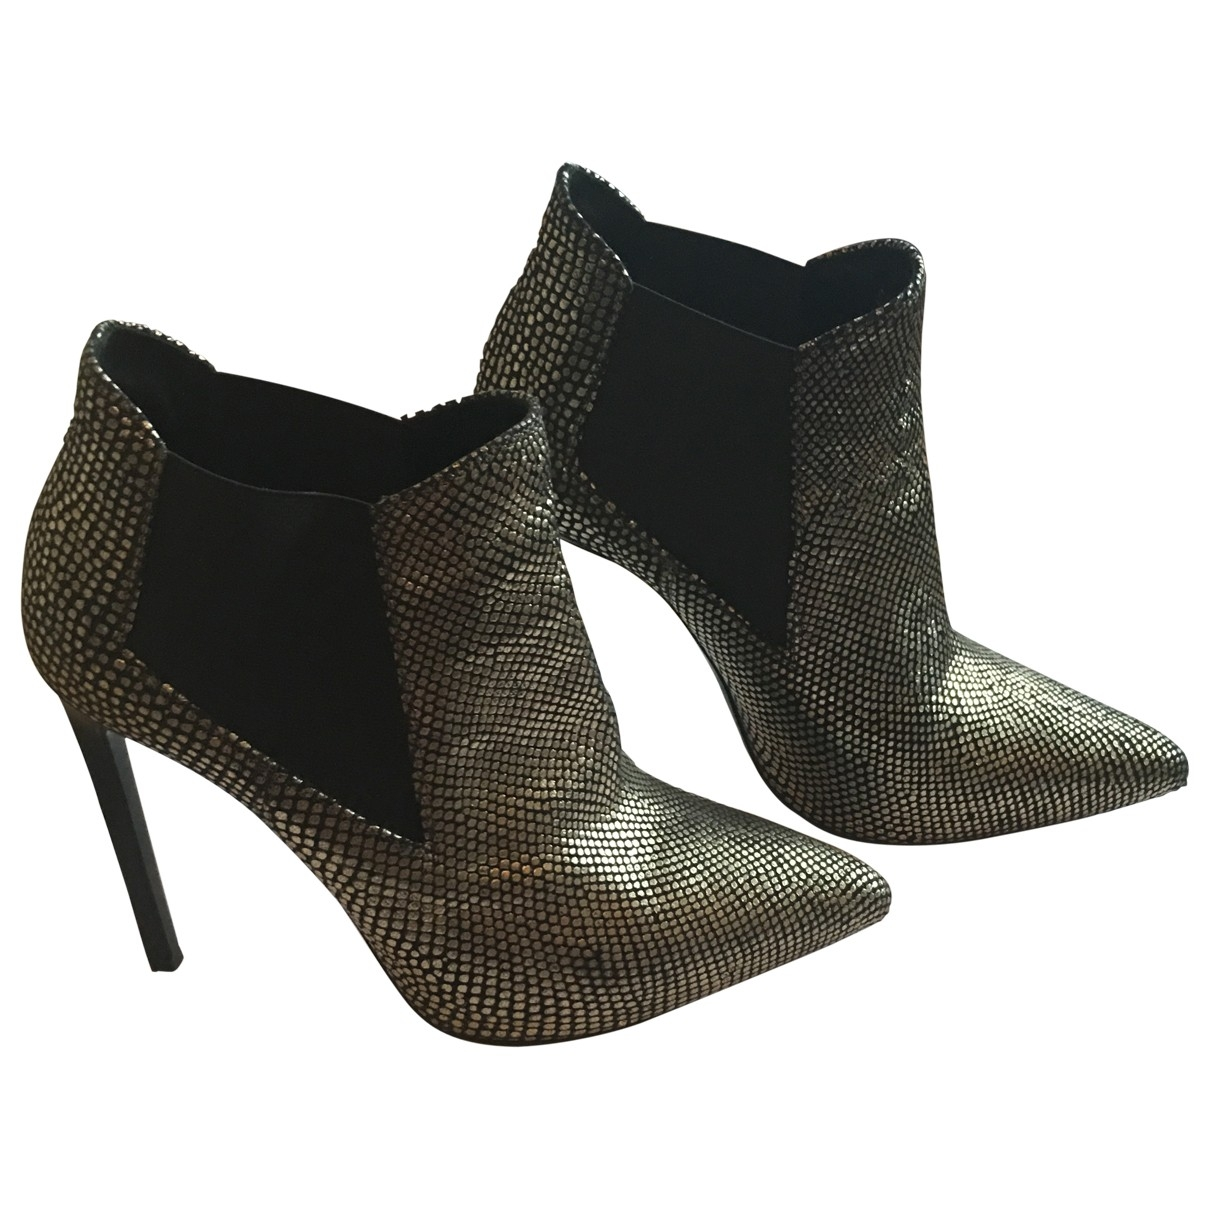 Saint Laurent \N Silver Leather Ankle boots for Women 36.5 EU